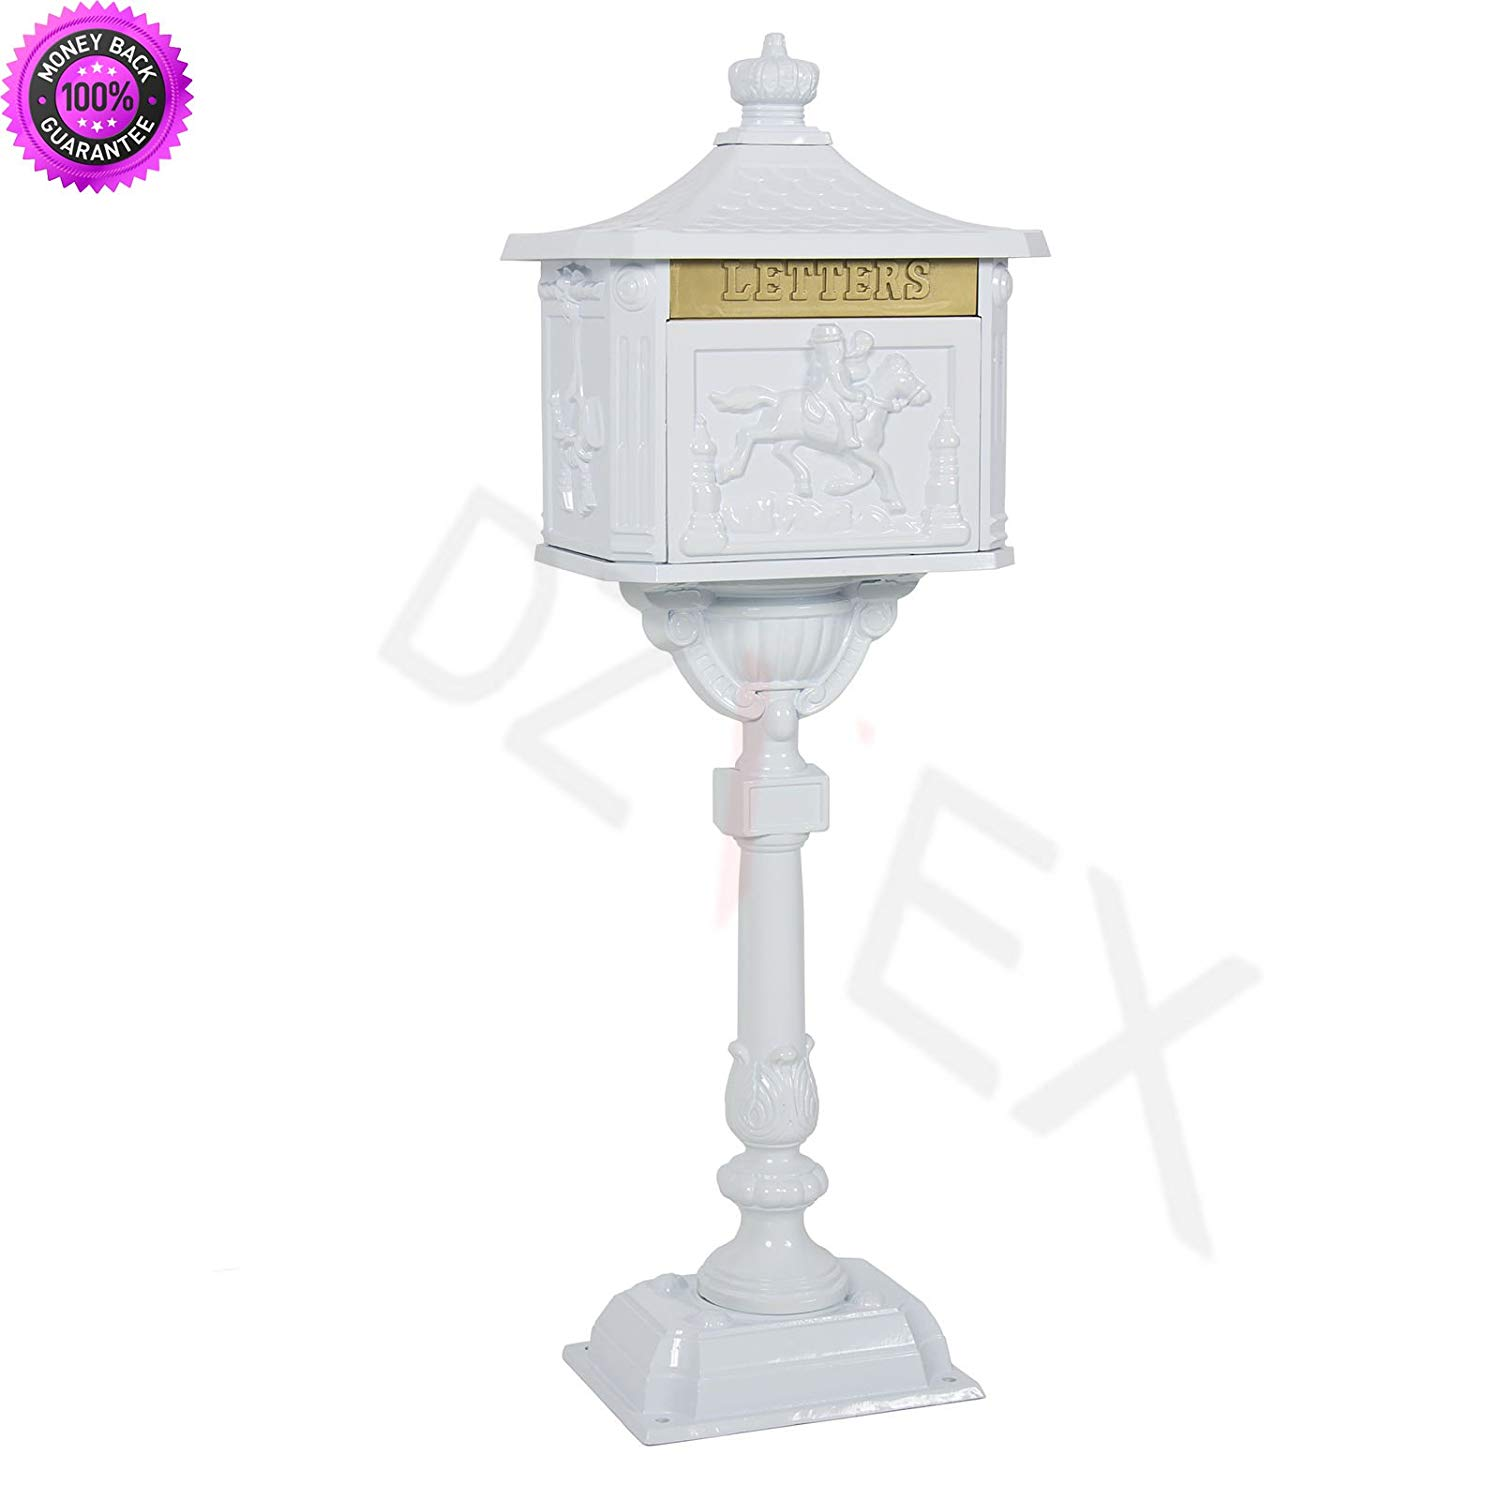 DzVeX_Mailbox Cast Aluminum White Mail Box Postal Box Security Heavy Duty New And wall mail slot door mail slots large mail slot home depot mail slot insulated mail slot through wall mail slot sleev